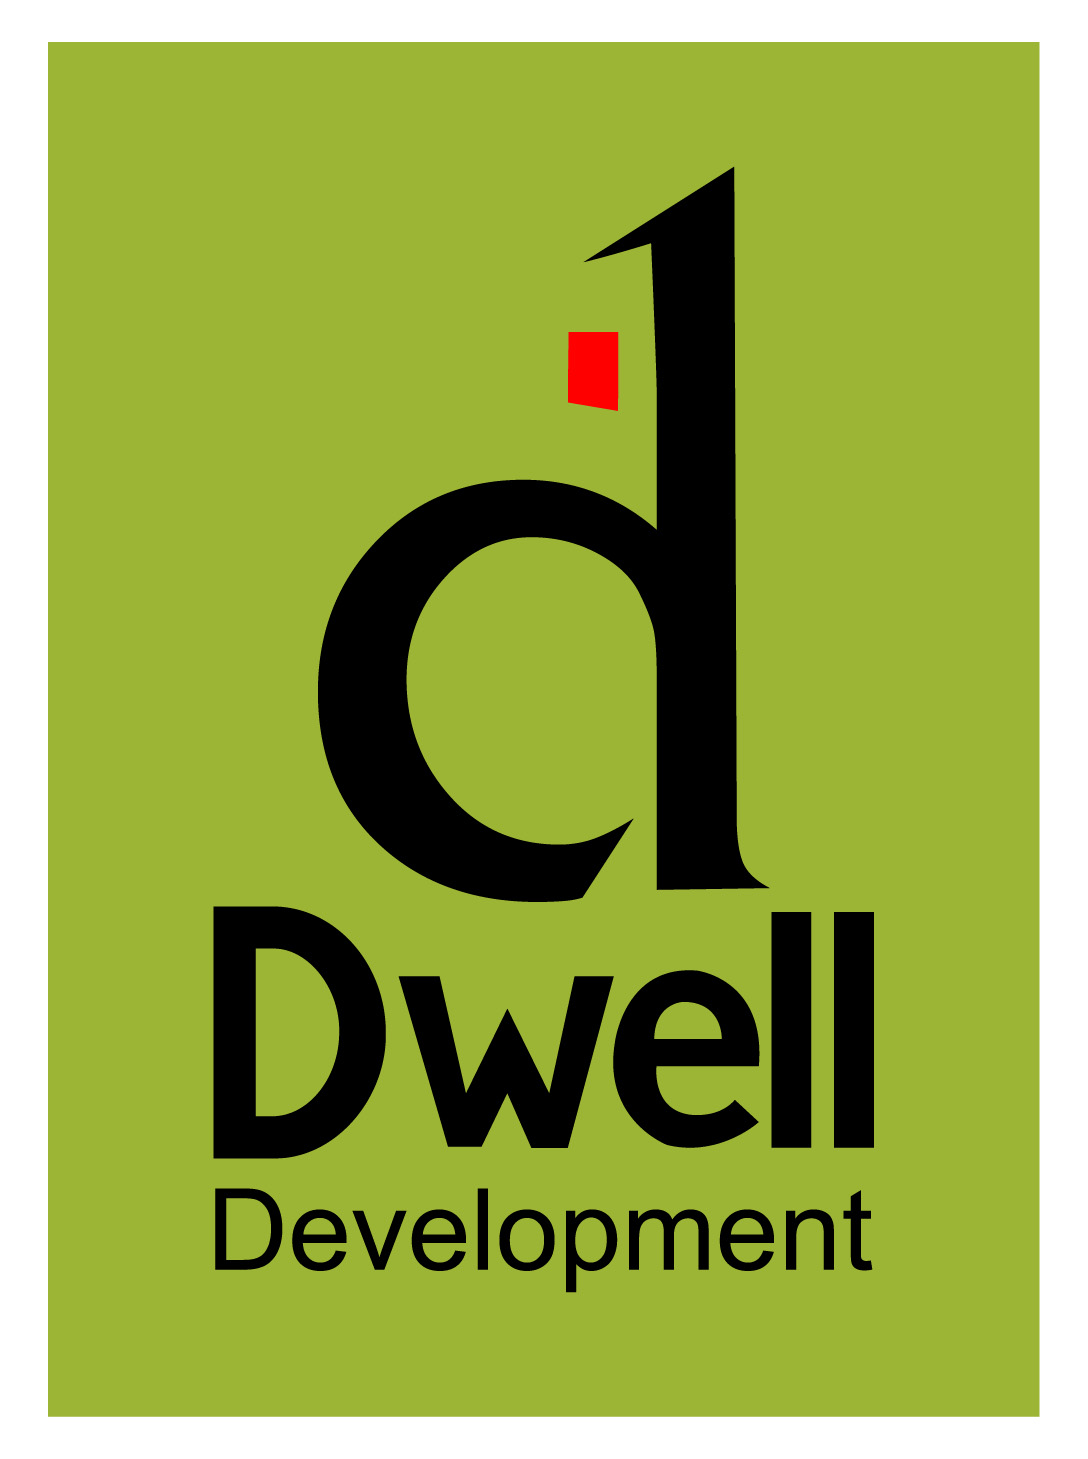 Dwell Development Logo